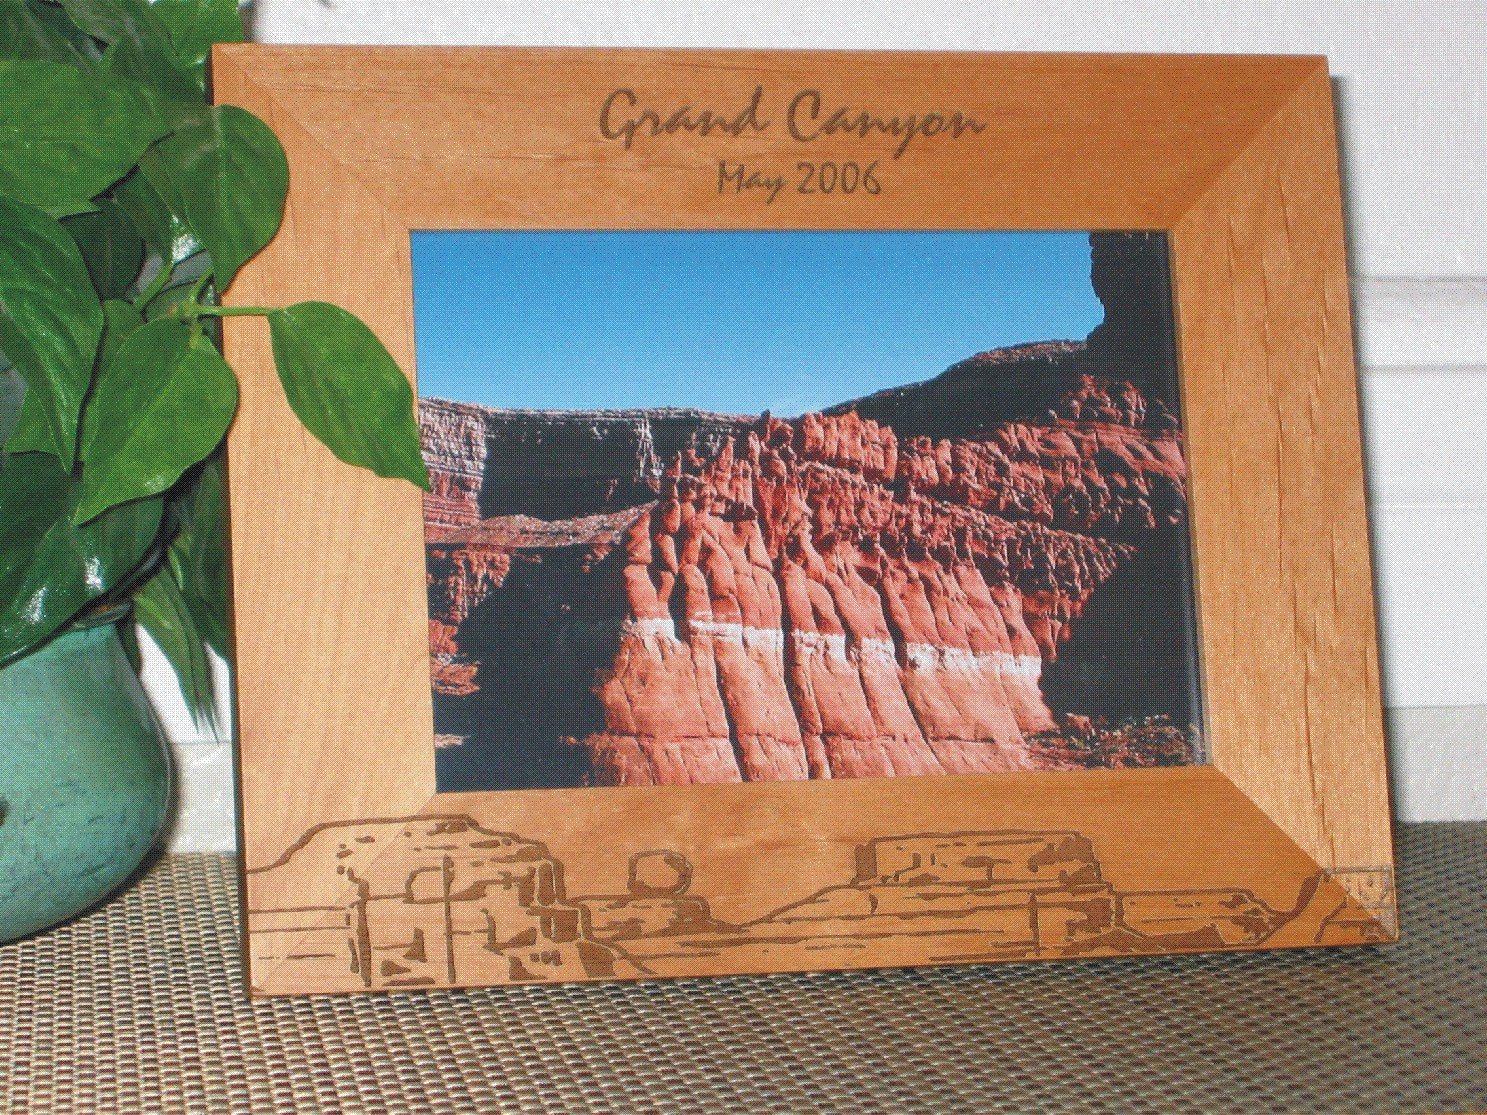 Grand Canyon Picture Frame - Personalized Frame - Laser Engraved Canyon